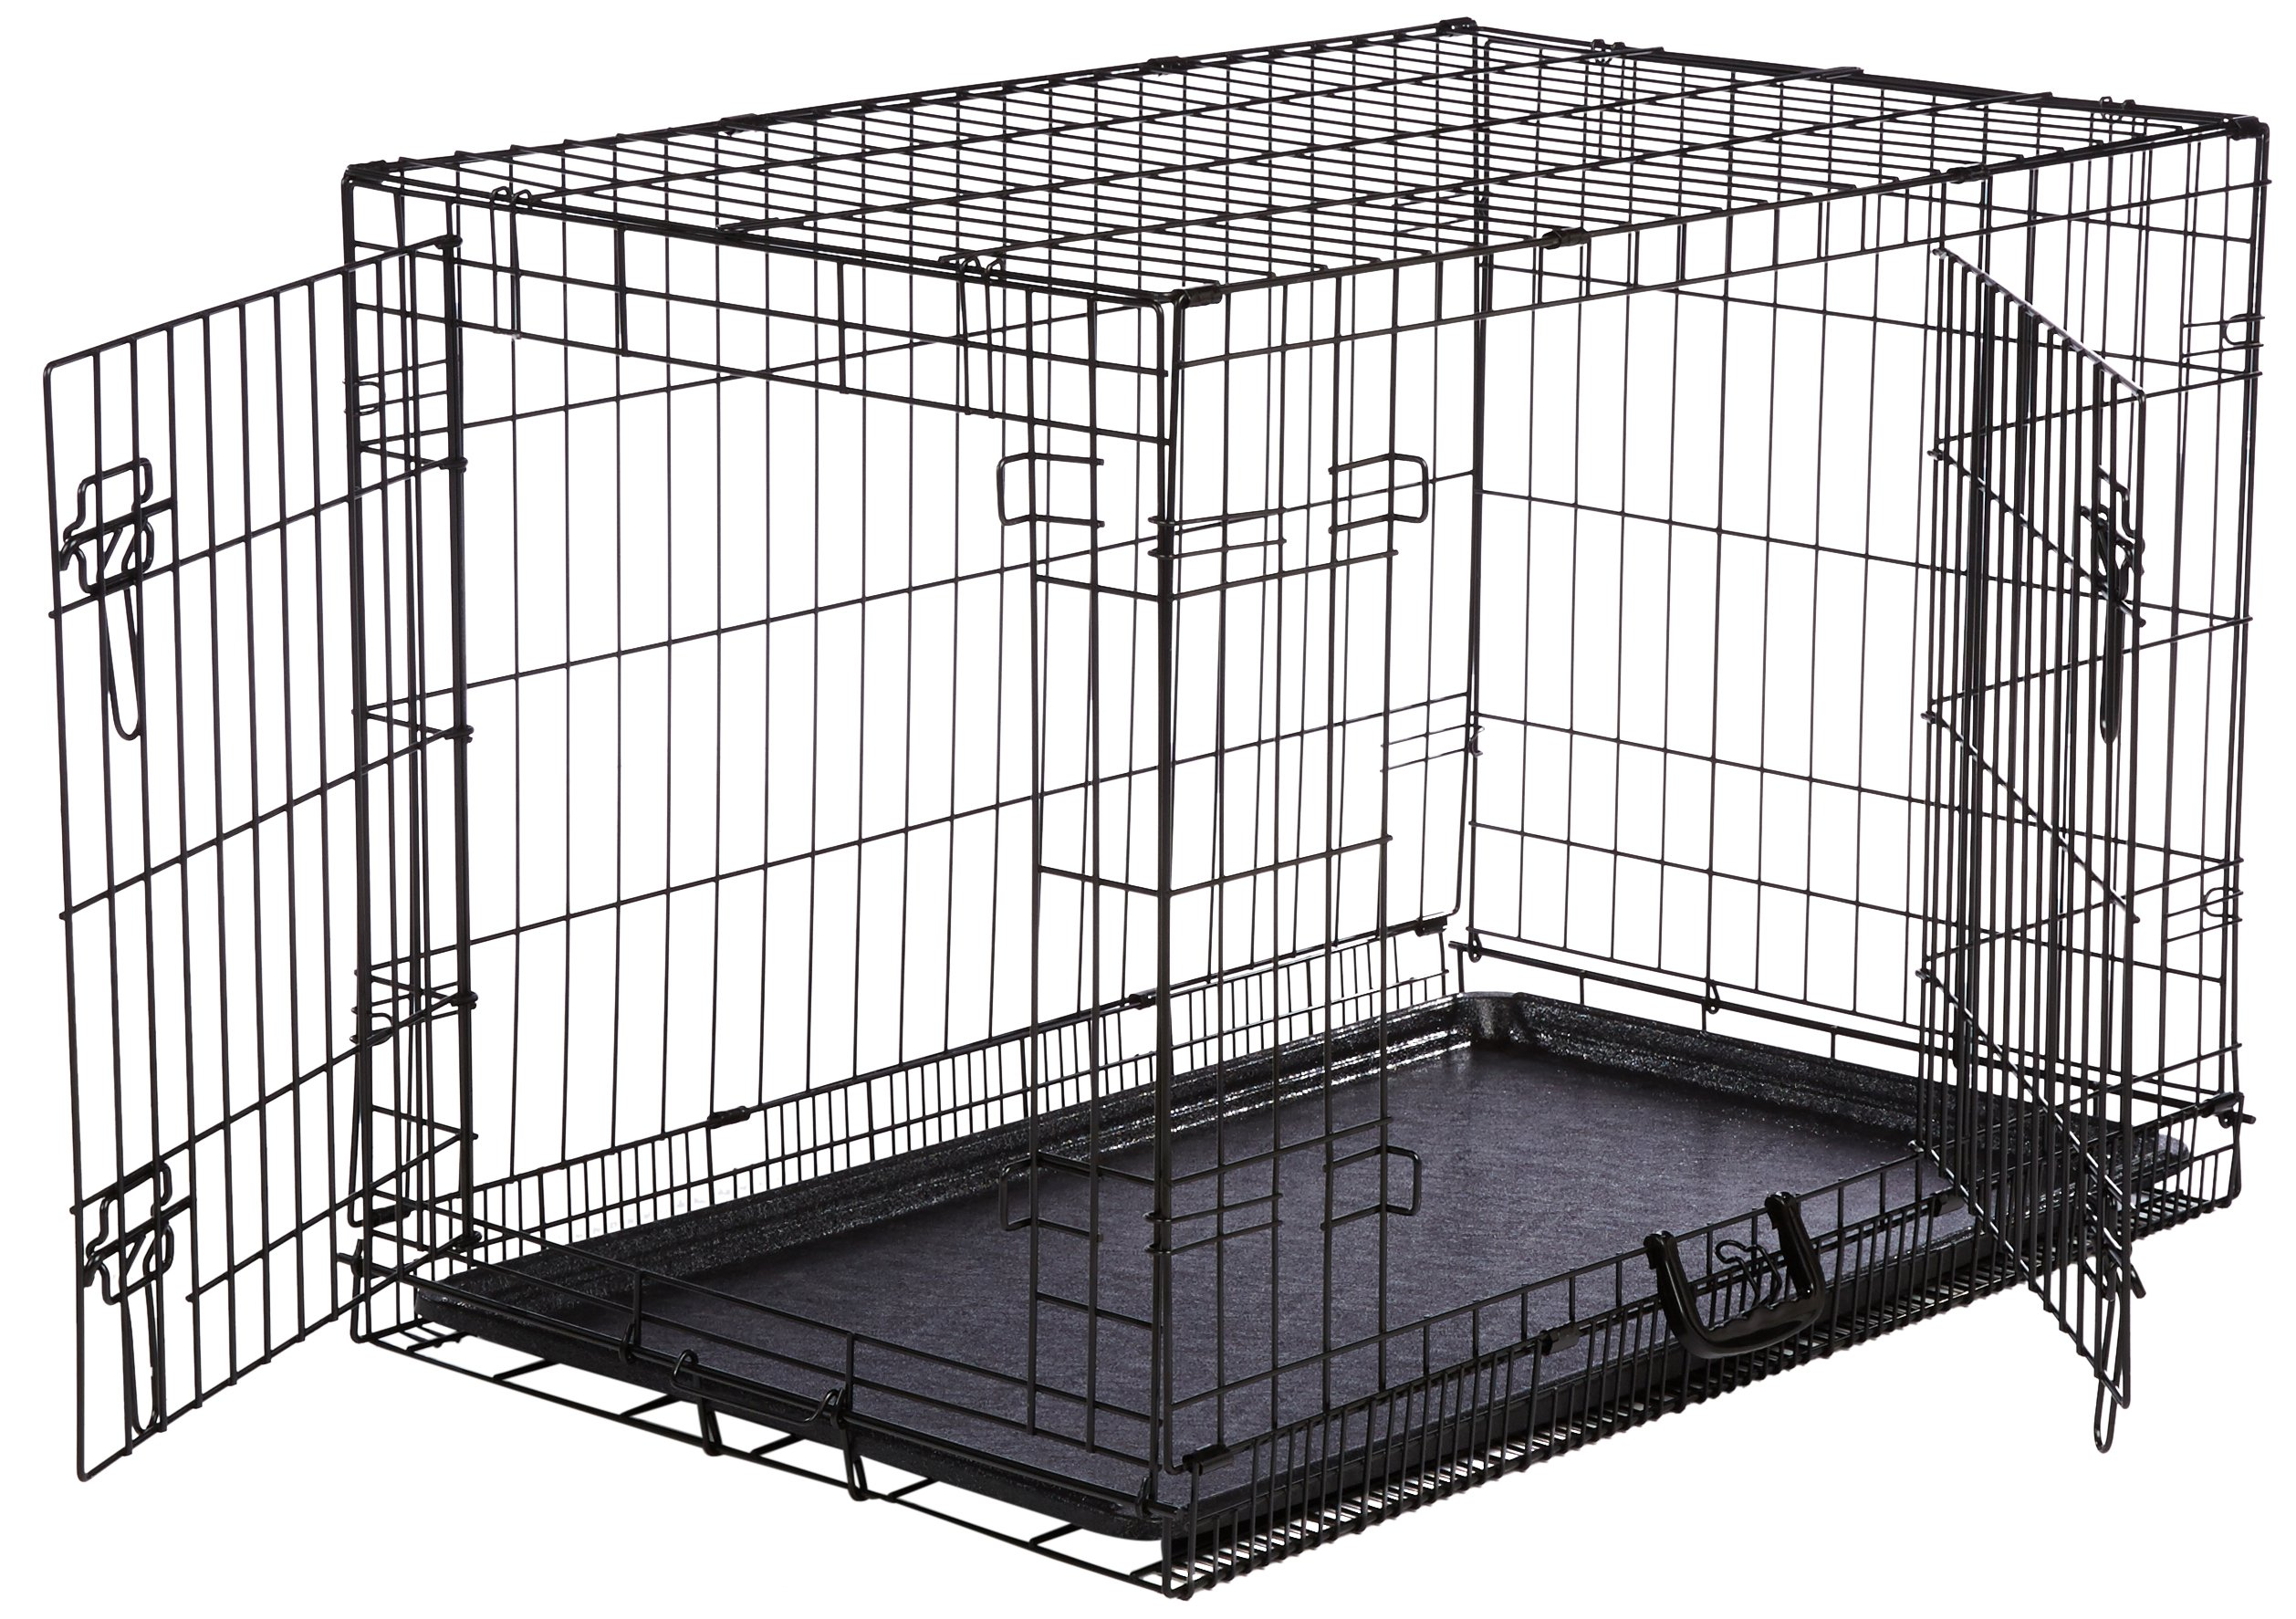 AmazonBasics Folding Metal Dog Crate Double-Door 36-inch